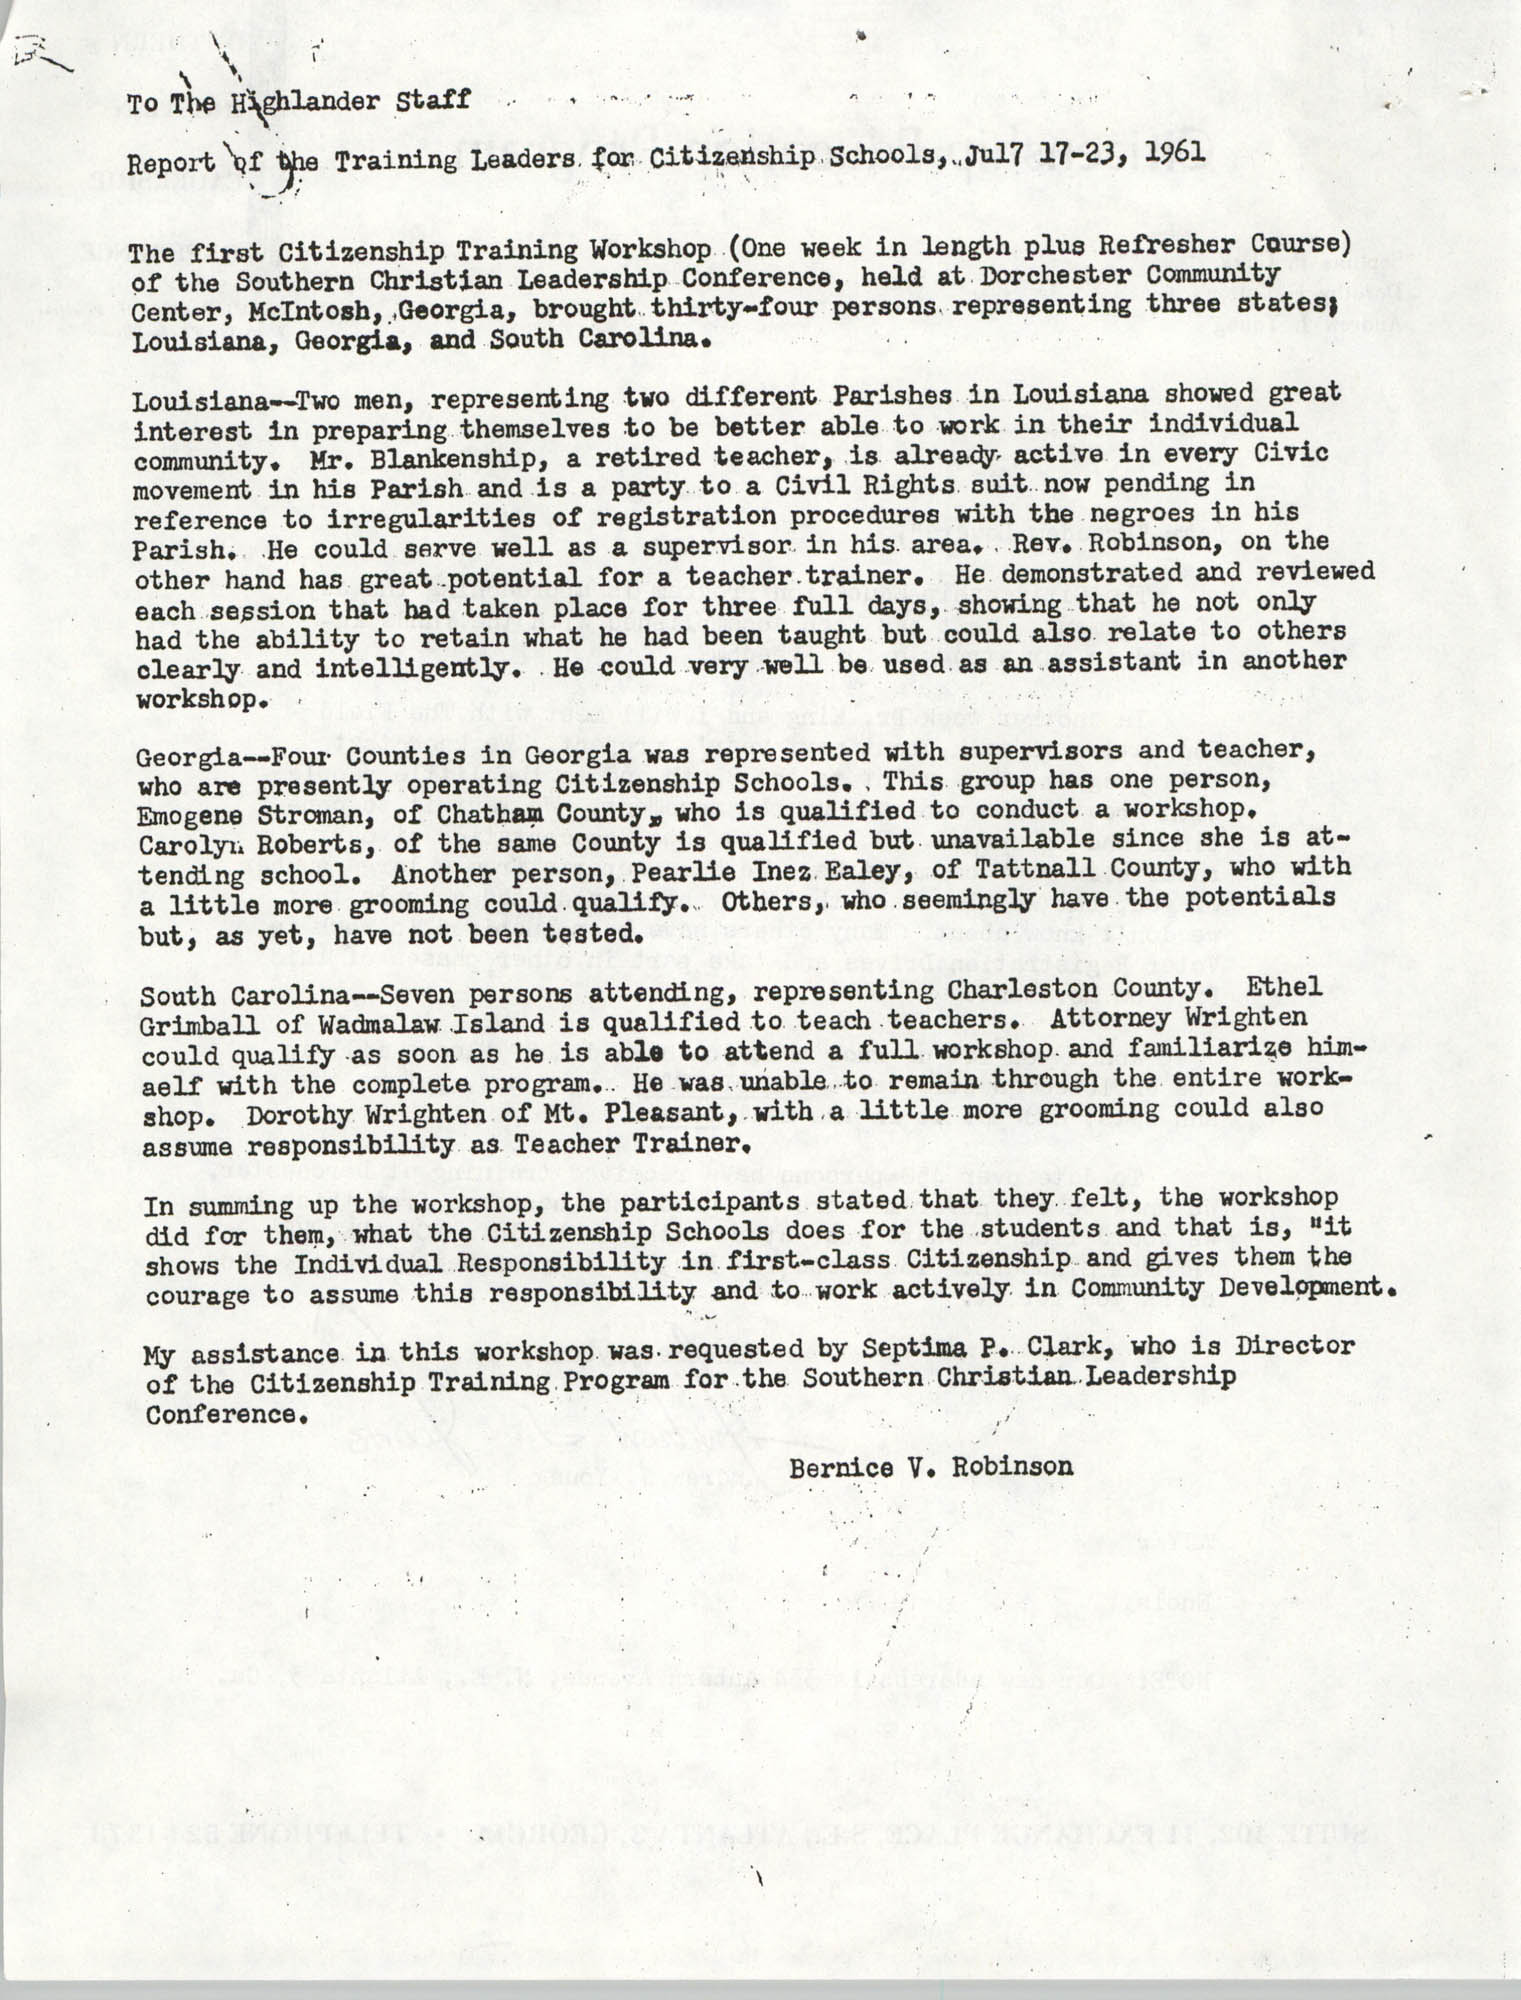 Letter from Bernice V. Robinson to The Highlander Staff, 1961